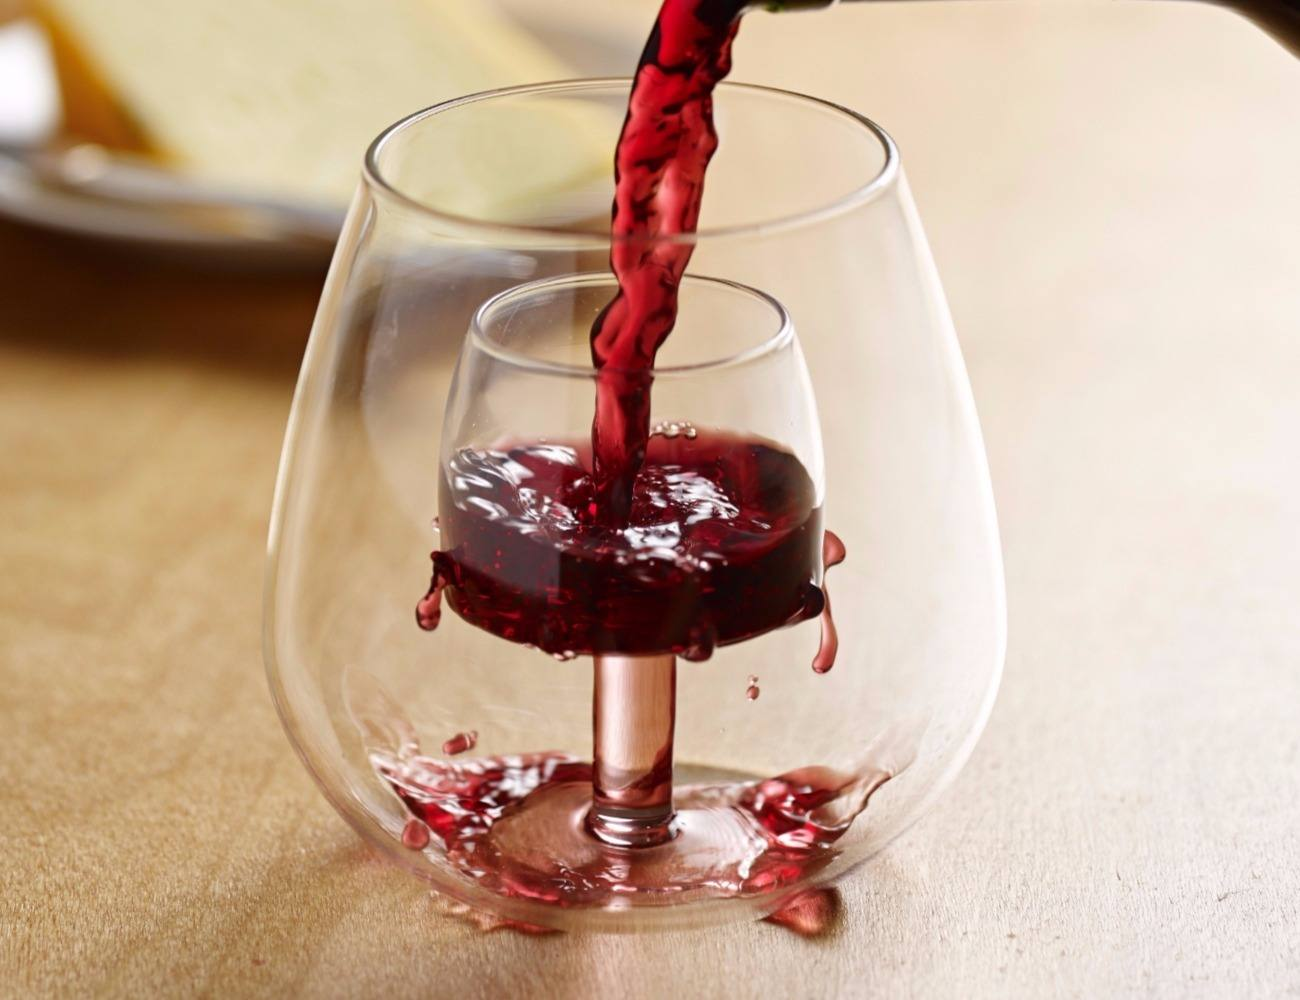 Easily Aerate Your Wine with These Special Chevalier Glasses